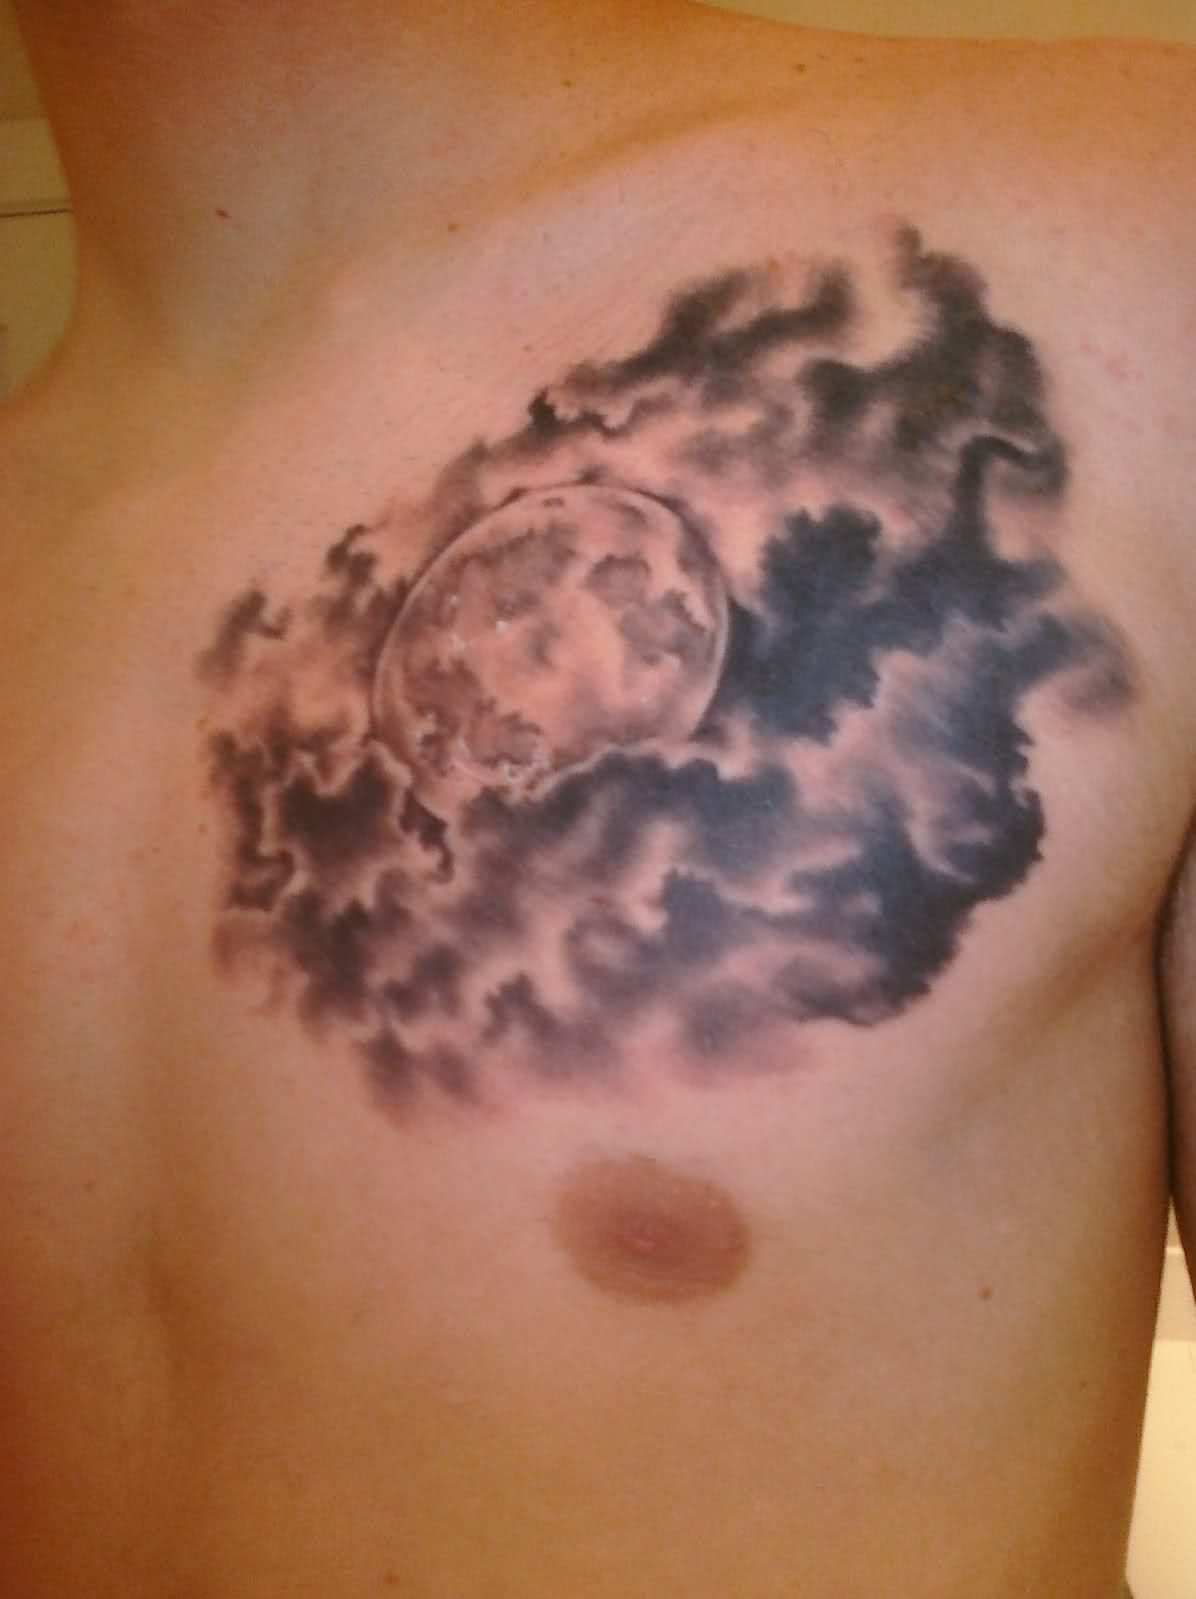 Realistic Moon Tattoo With Clouds Full Moon Clouds Tattoo Related Cloud Tattoo Full Moon Tattoo Moon Tattoo